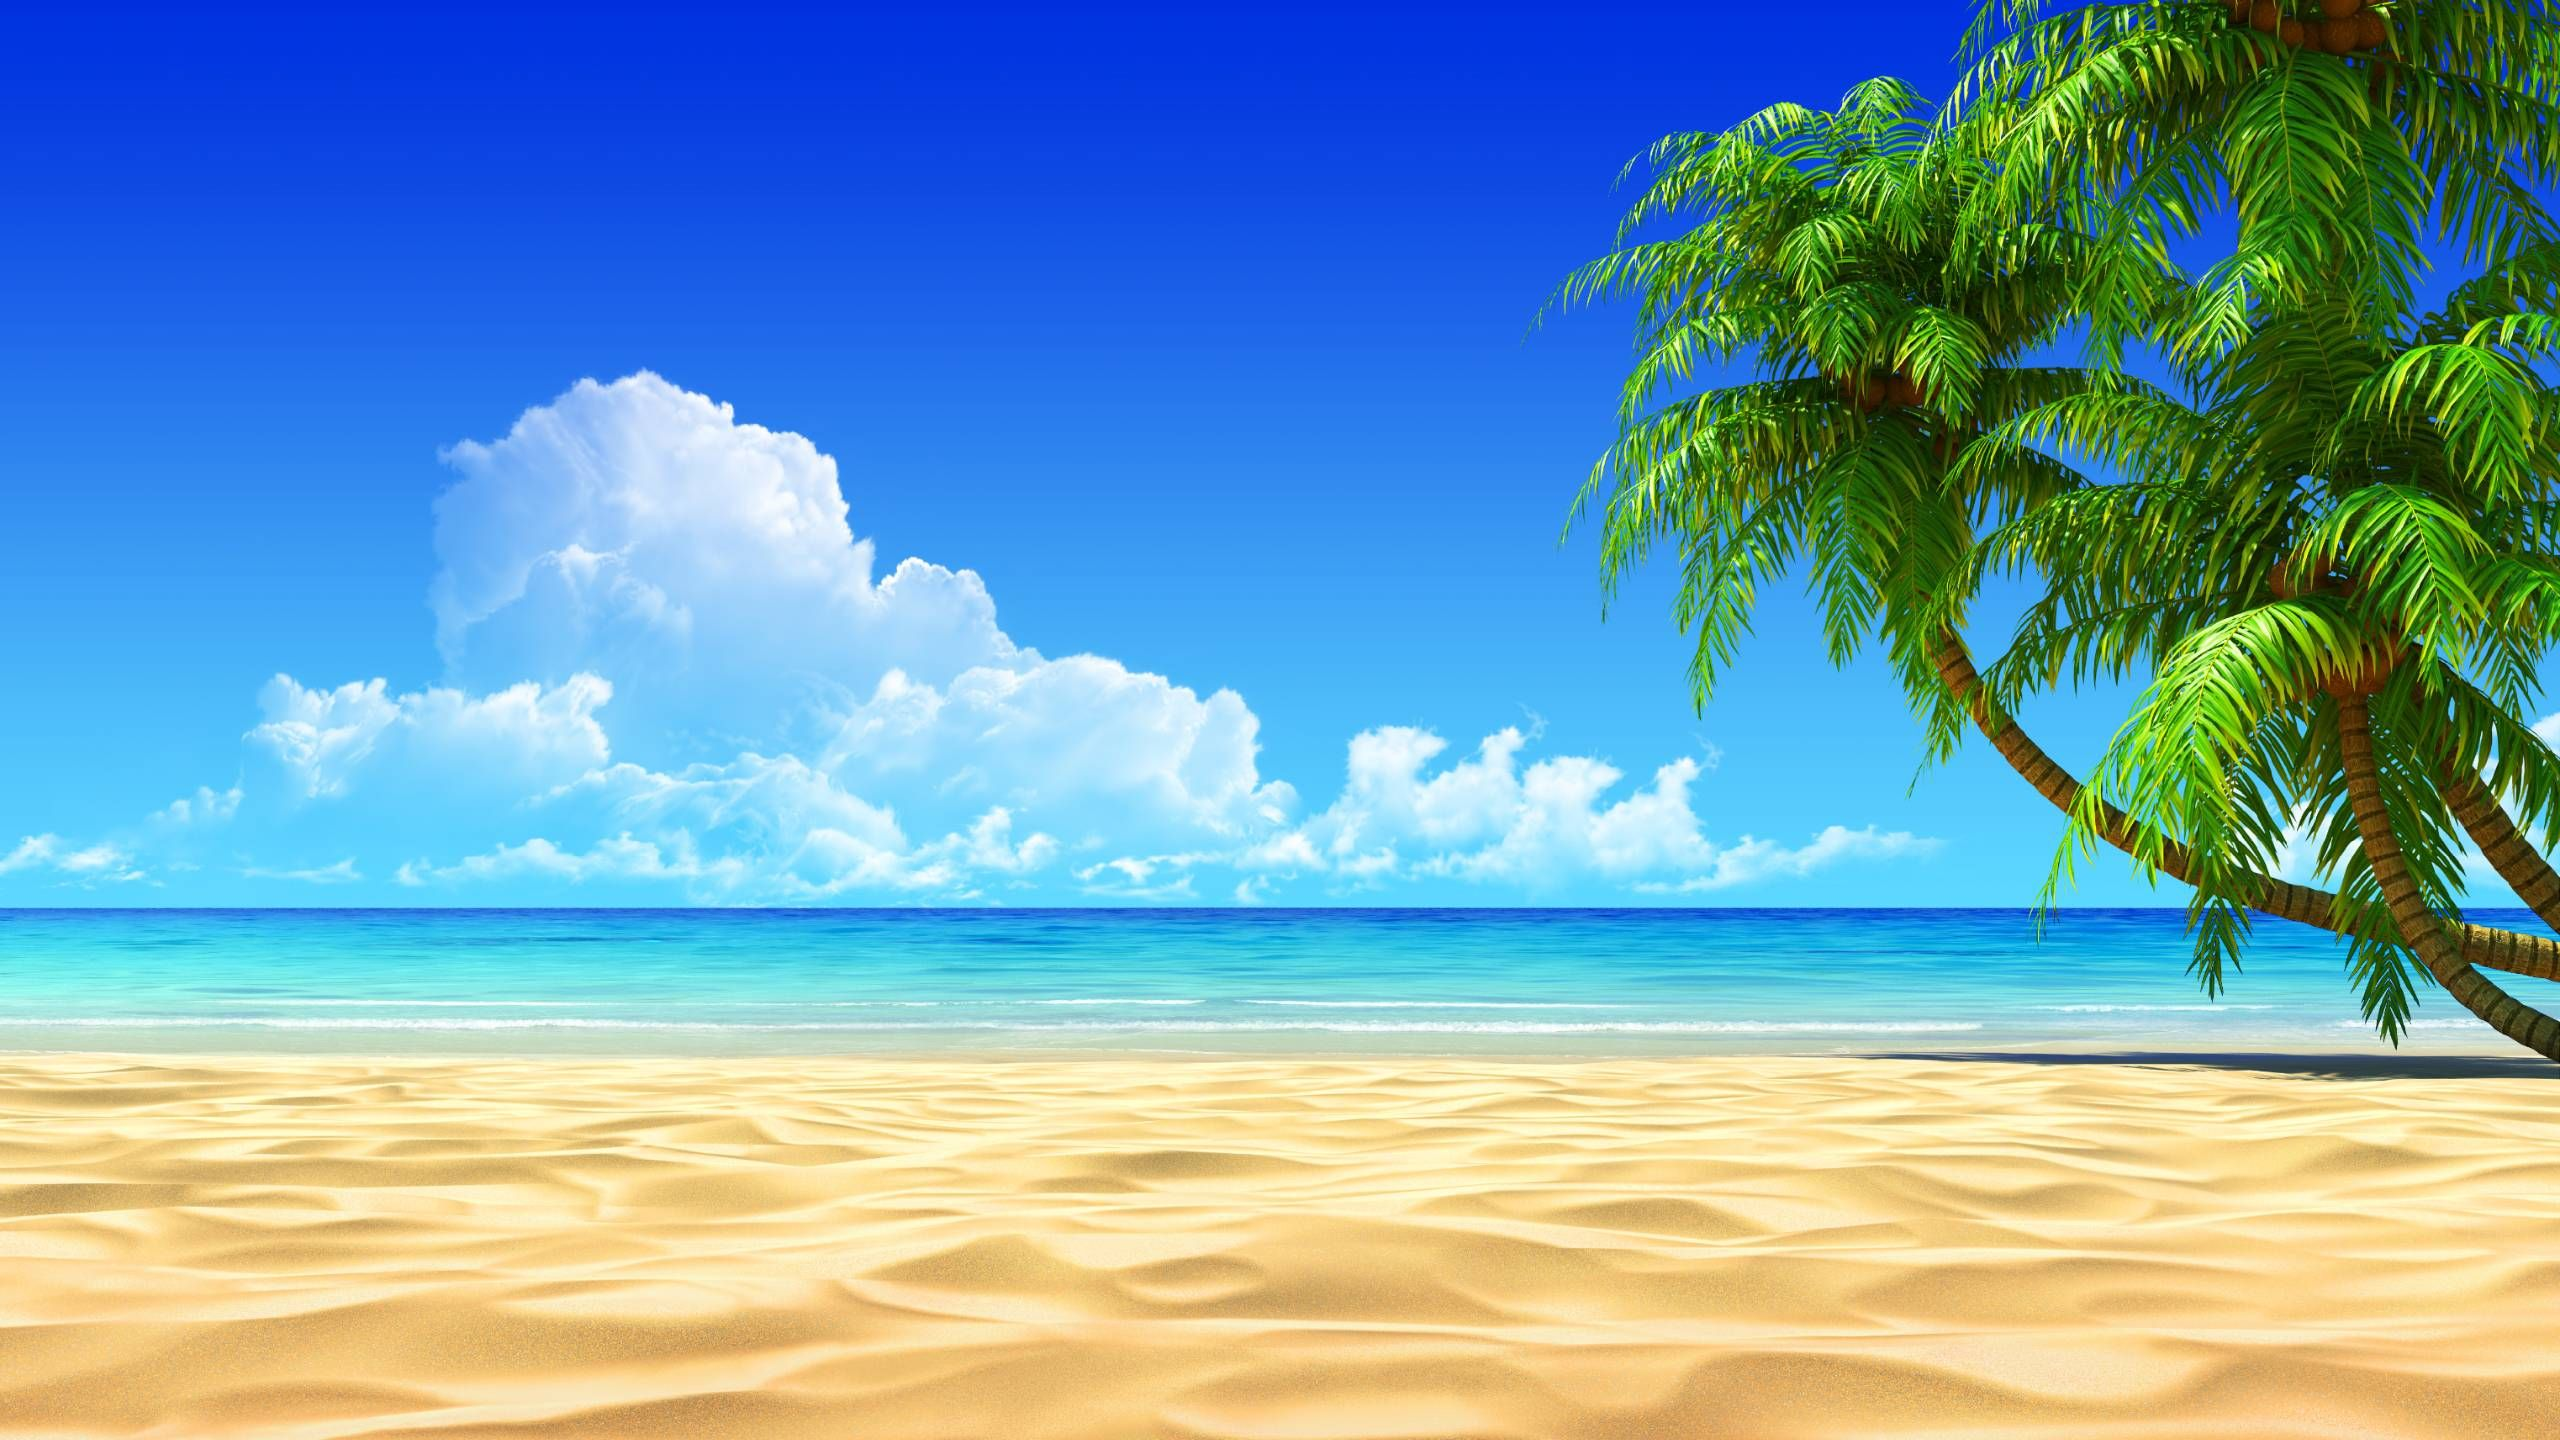 Tropical Beach Wallpaper Picture Beach Wallpaper Beach Background Beach Desktop Backgrounds